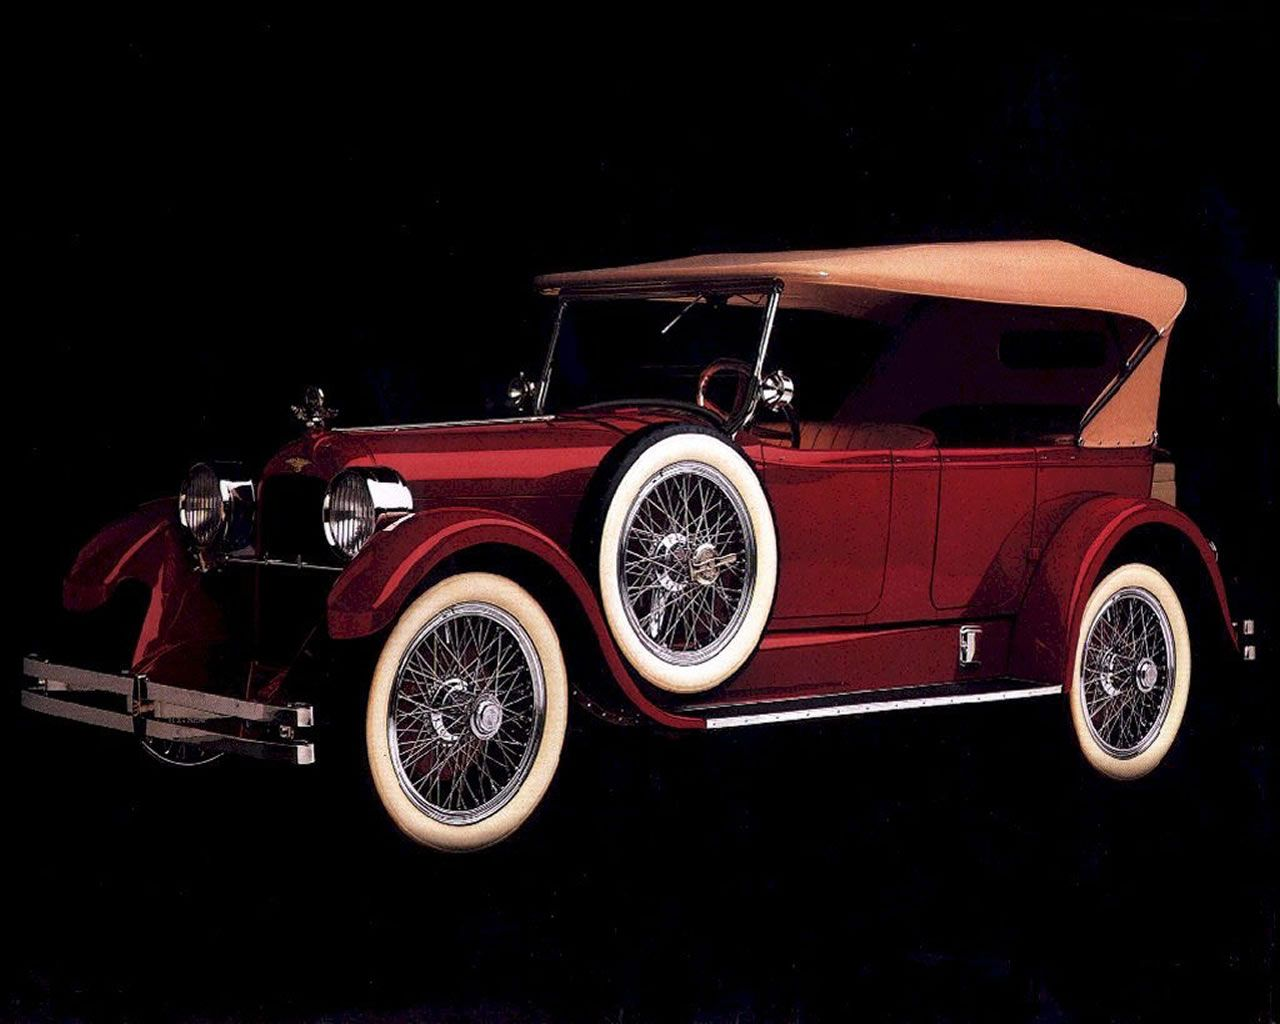 Red Cool Classic Car Black Wallpaper For Downl 6228 Wallpaper Classic Cars Automobile Companies Car Car